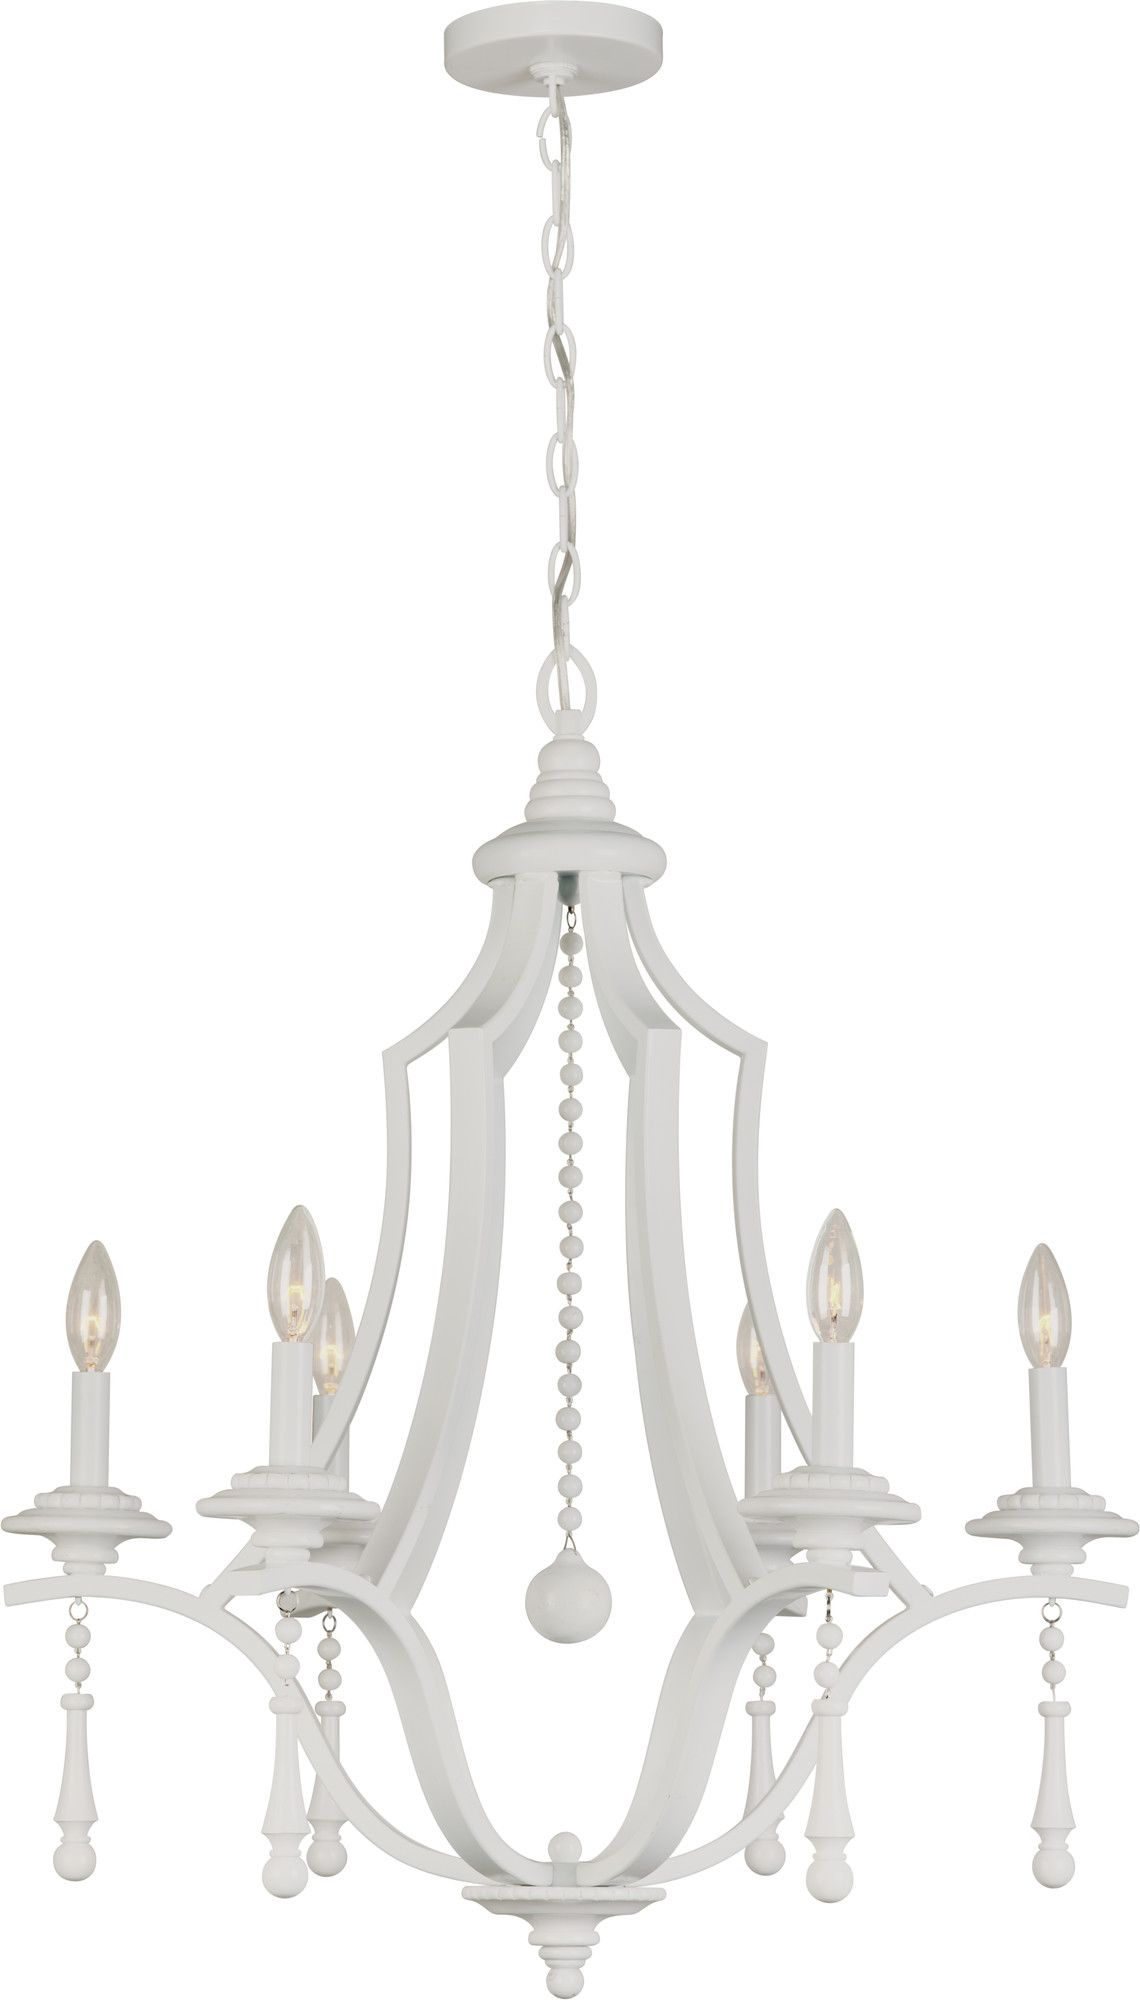 Parson 6 Light Chandelier | Products | Chandelier Lighting Pertaining To Diaz 6 Light Candle Style Chandeliers (View 16 of 30)